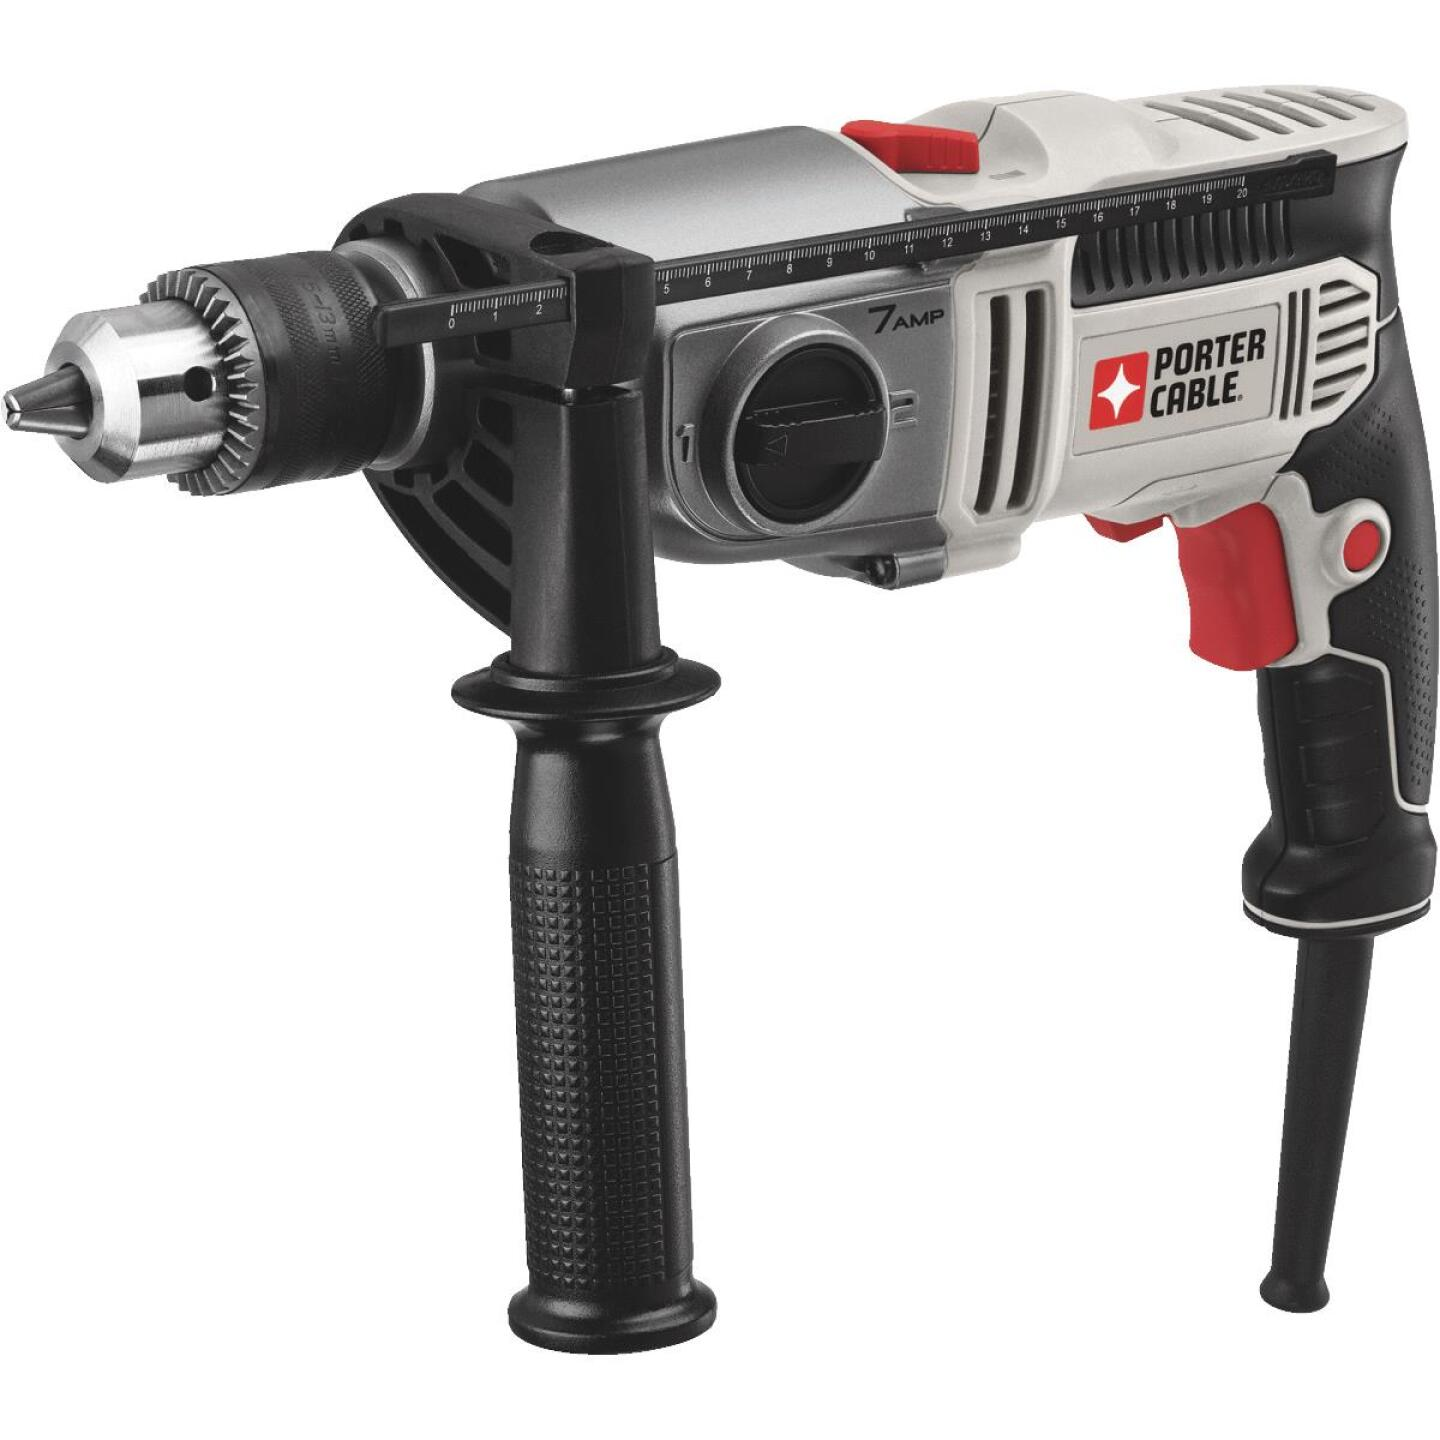 Porter Cable 1/2 In. Keyed 7.0-Amp VSR 2-Speed Electric Hammer Drill Image 1